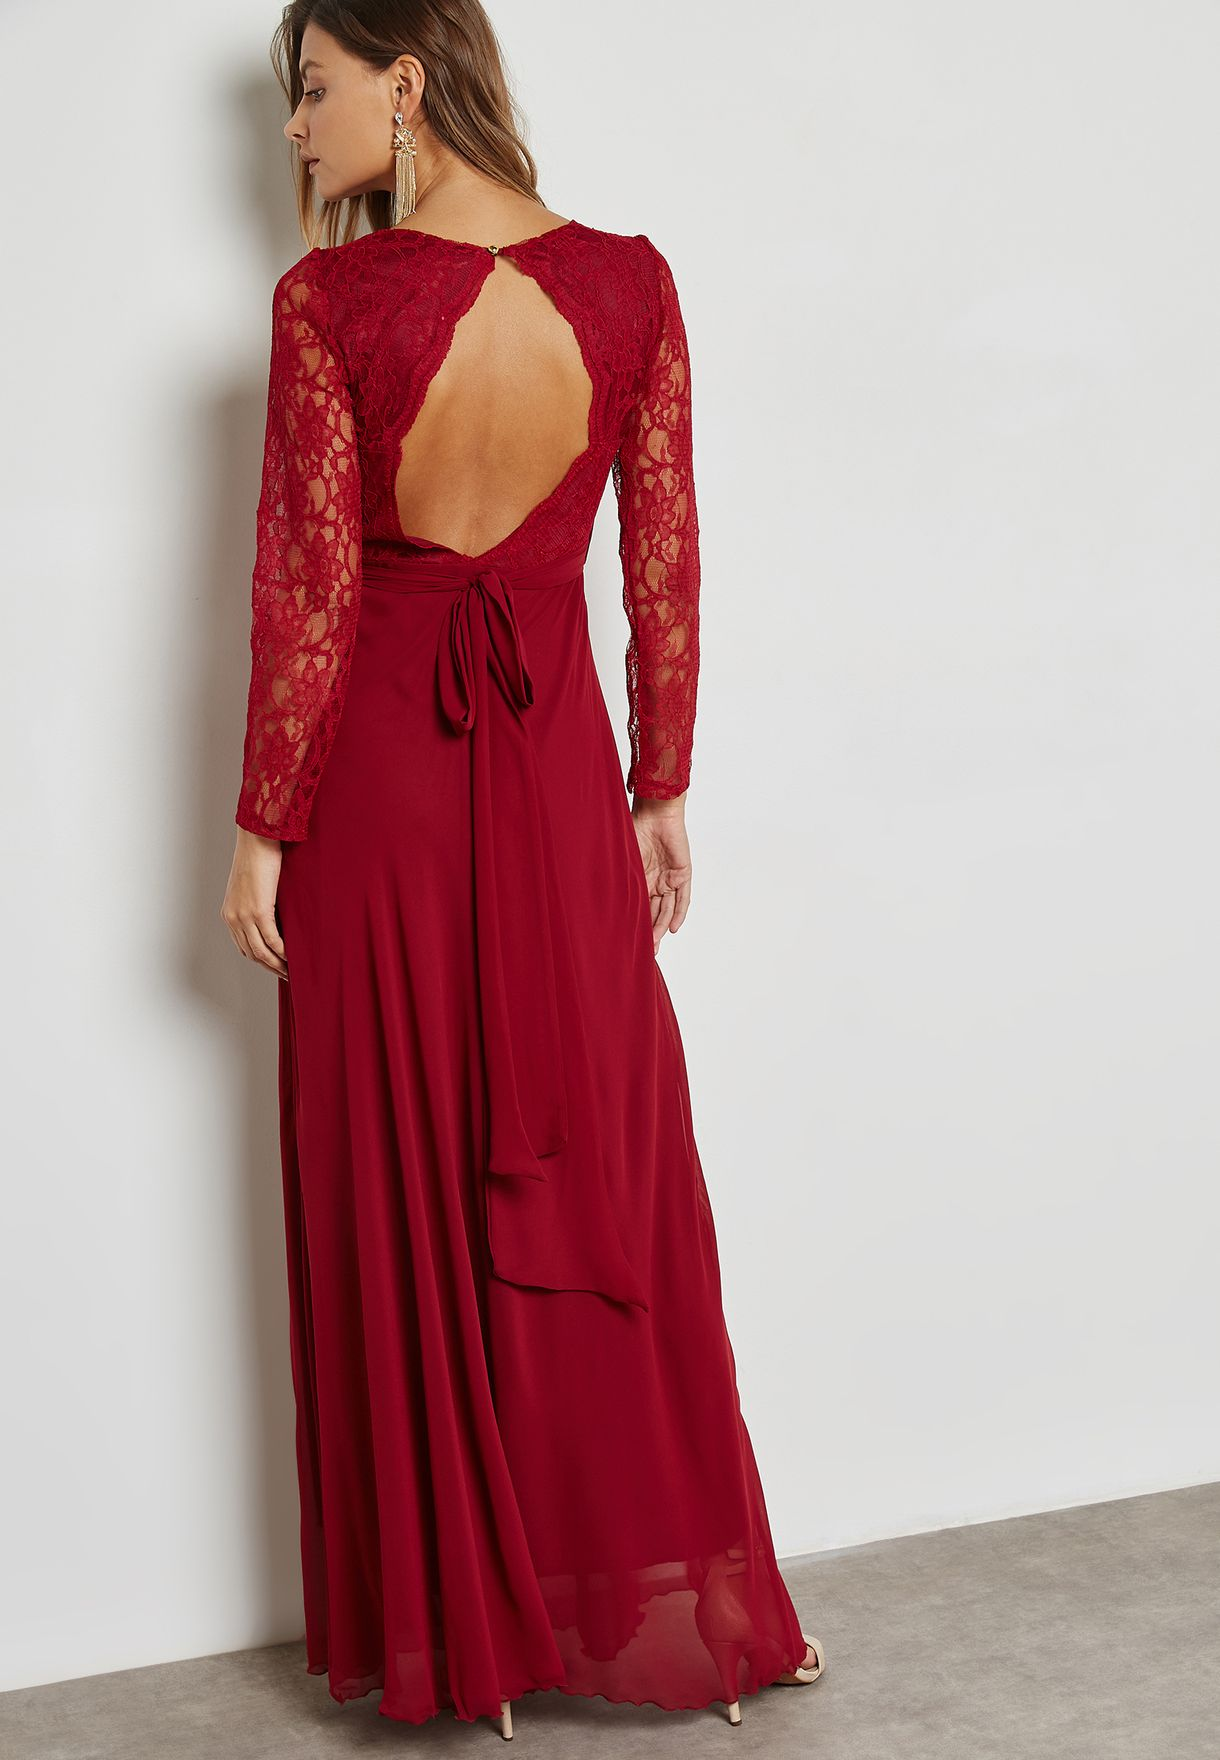 Lace Top Open Back Self Tie Dress